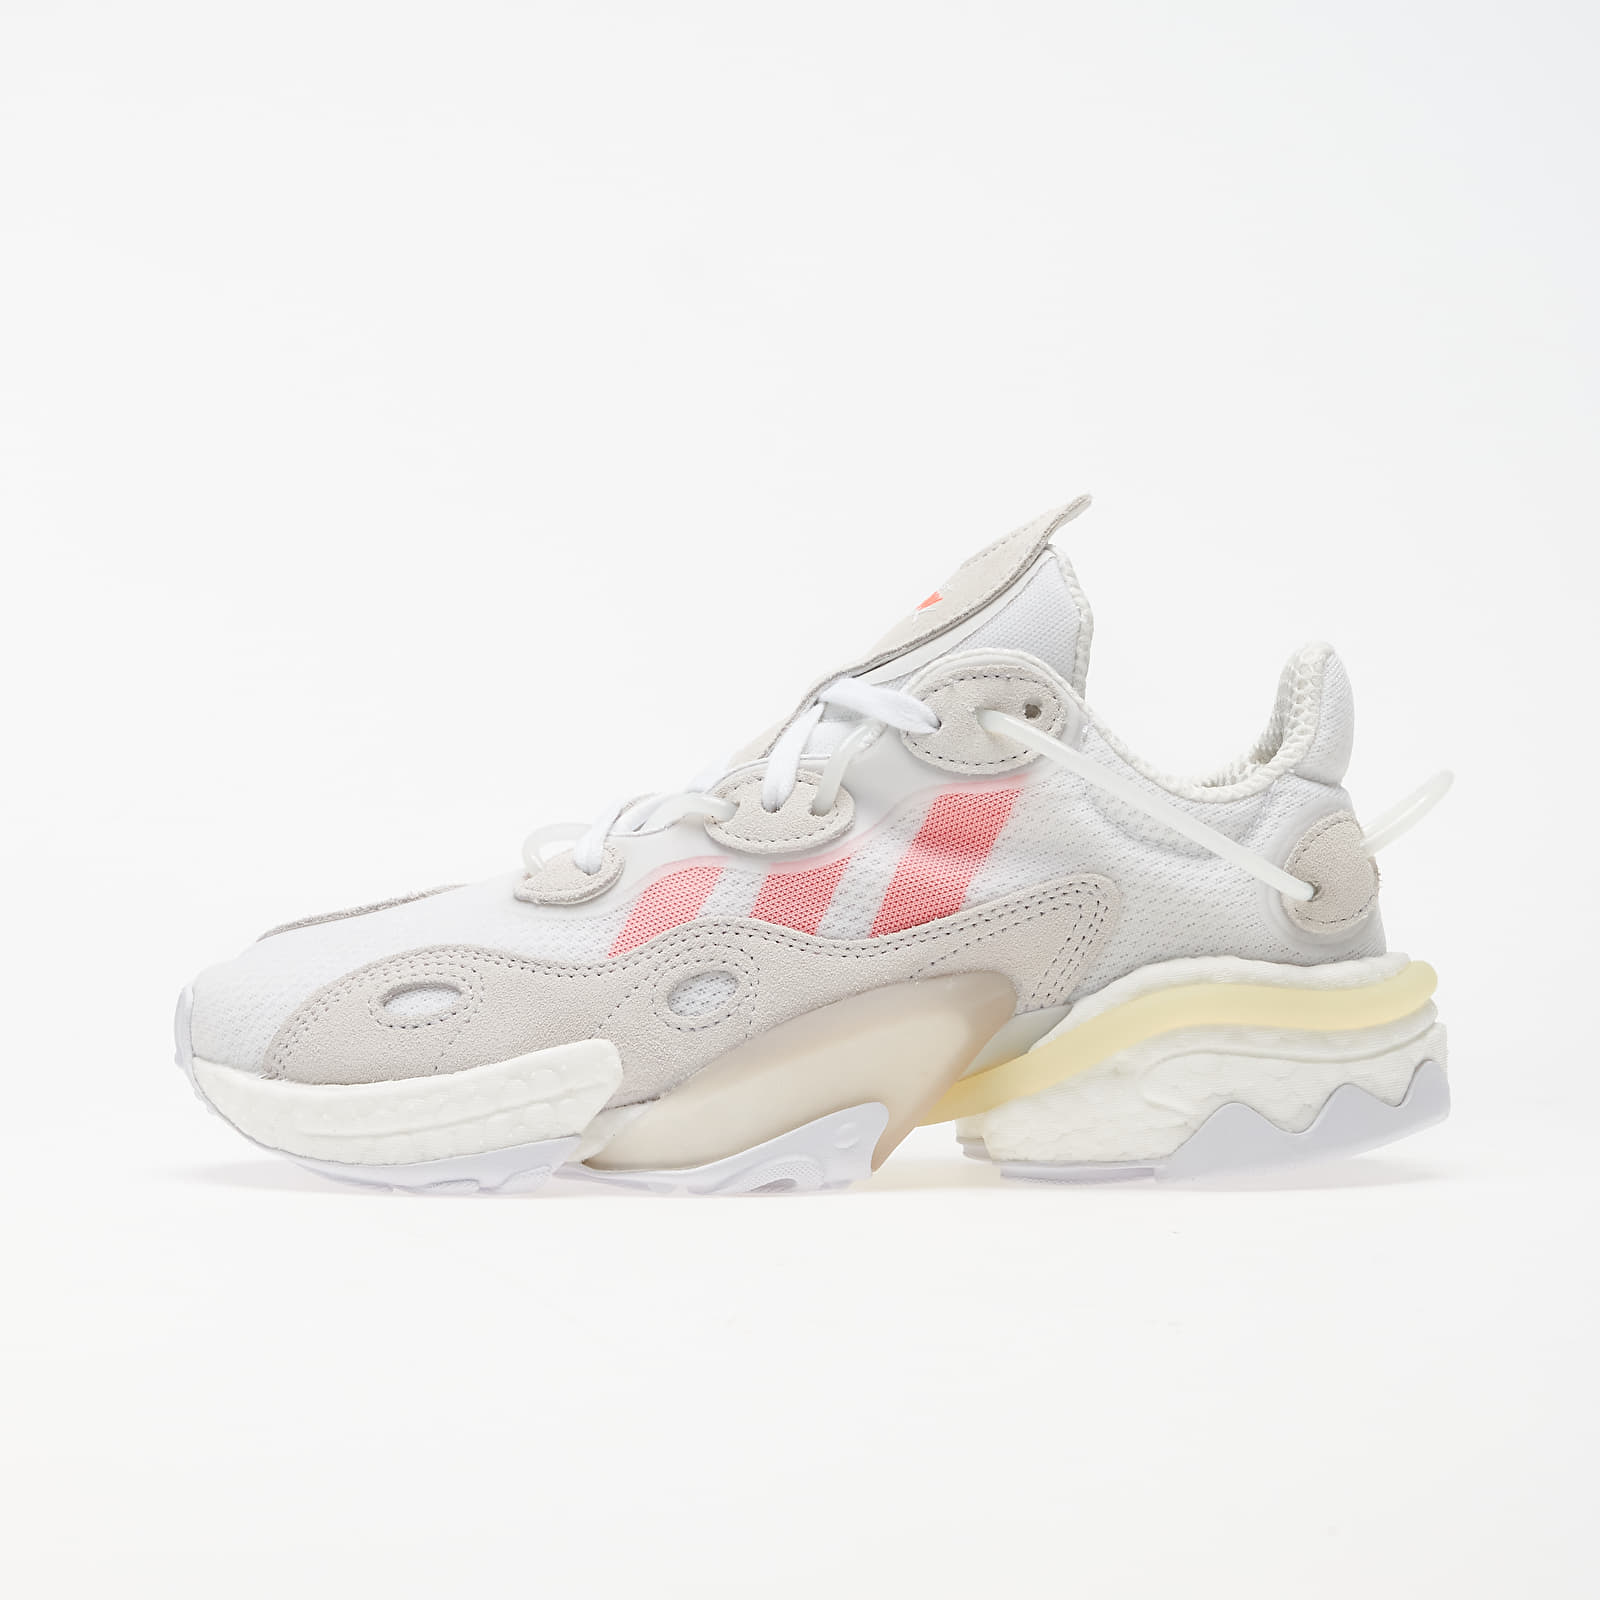 Women's shoes adidas Torsion X W Ftw White/ Solid Red/ Crystal White